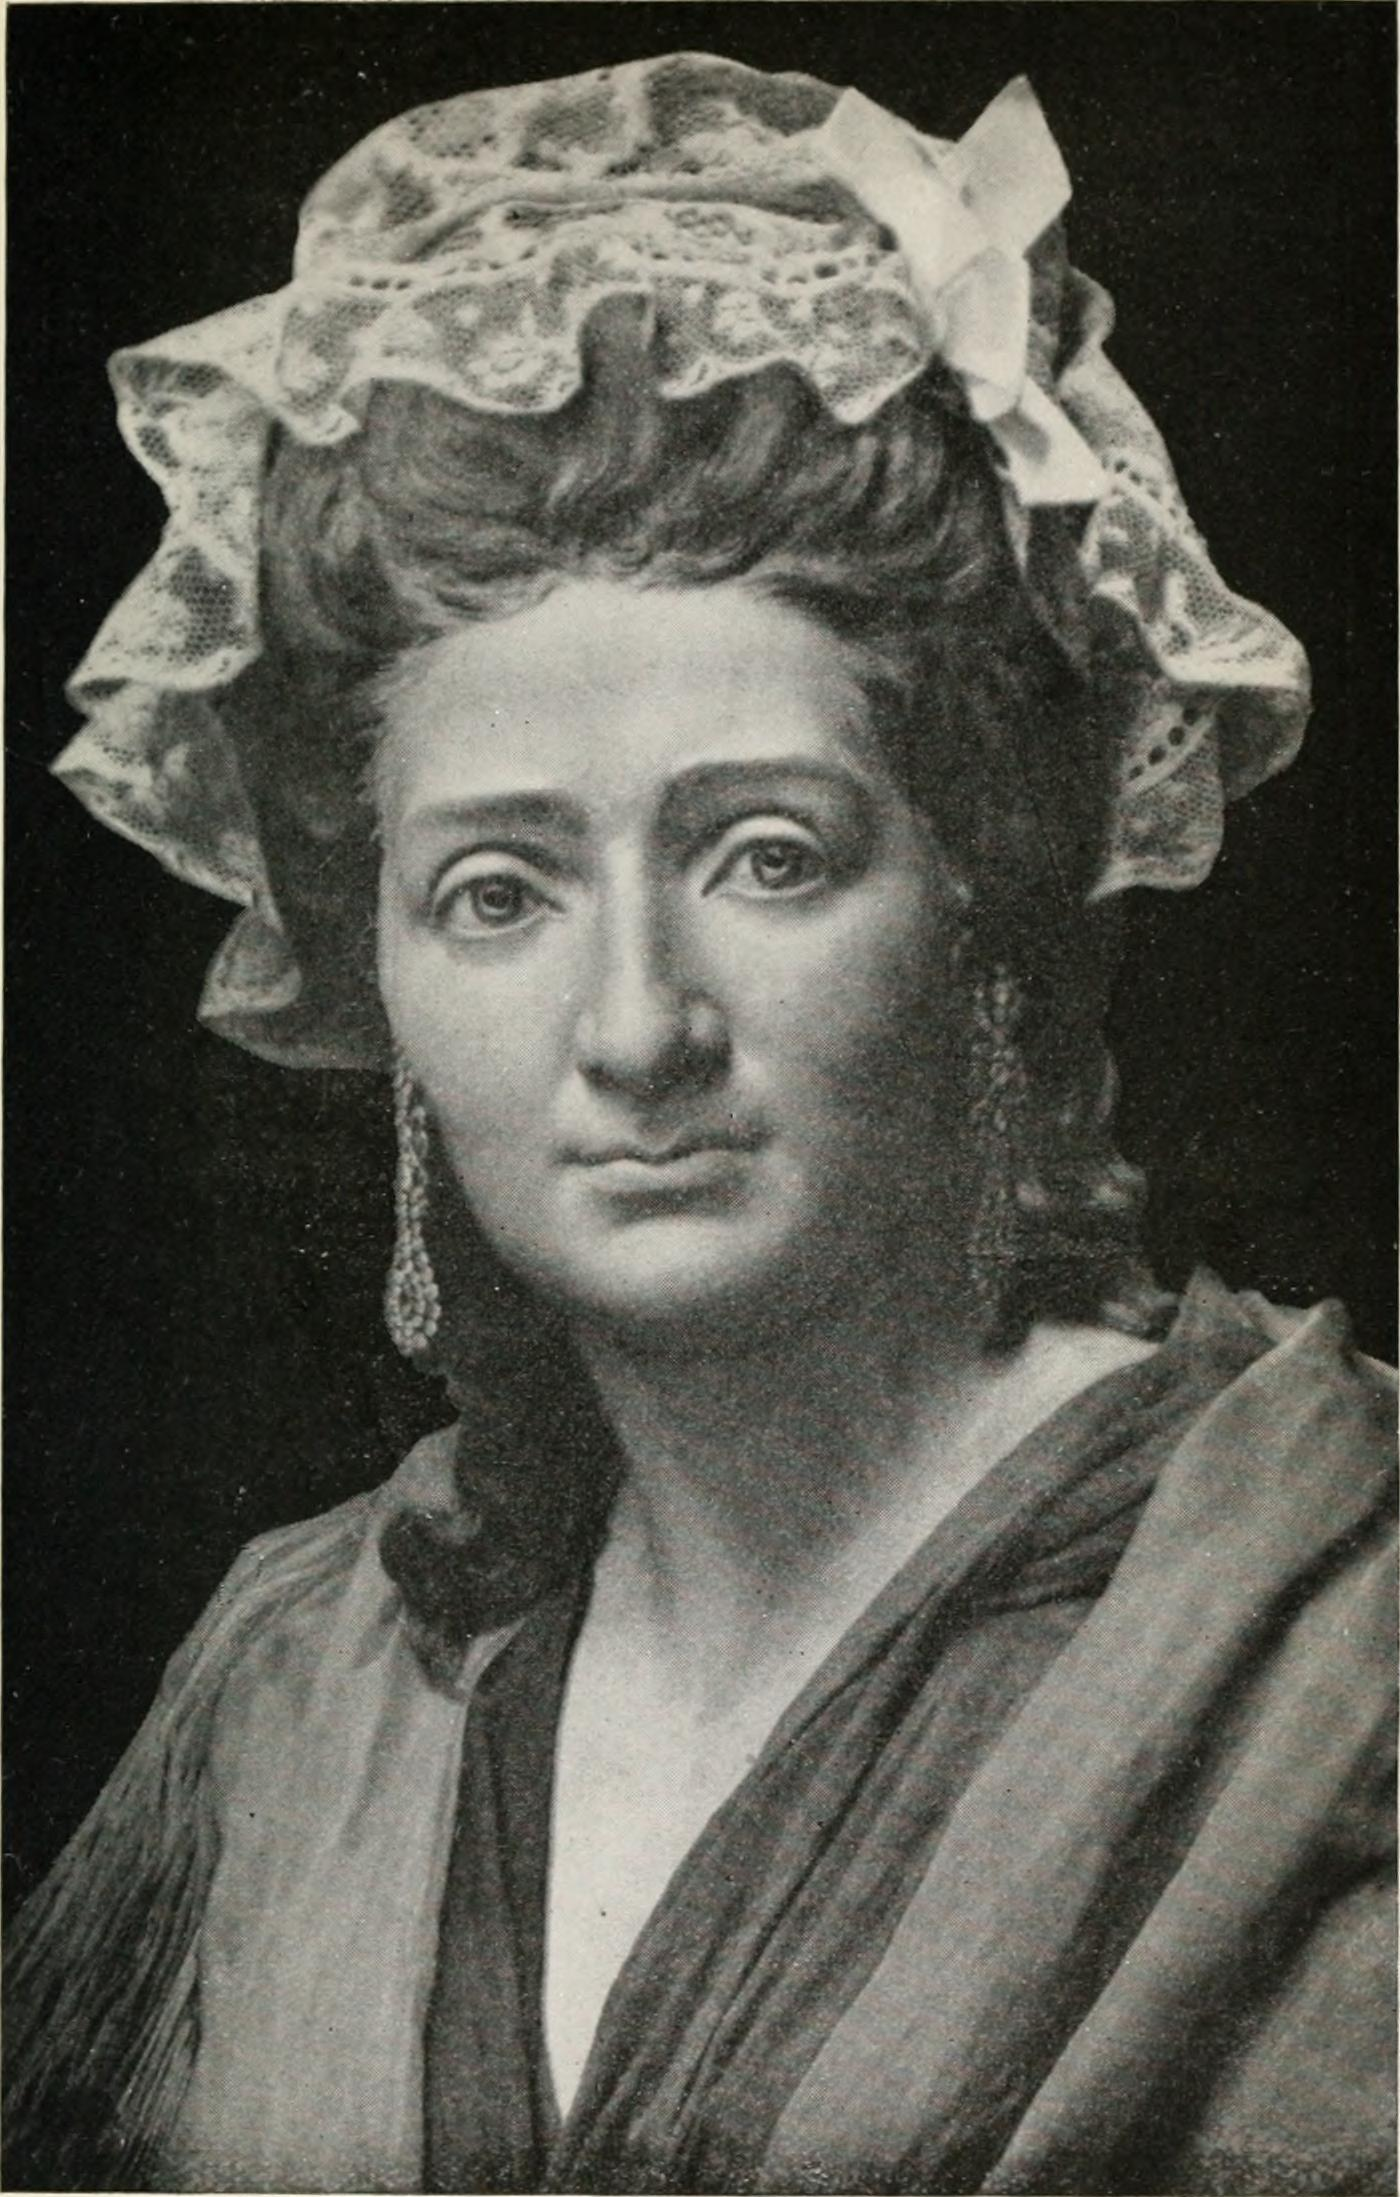 Madame Tussaud at the age of 42.